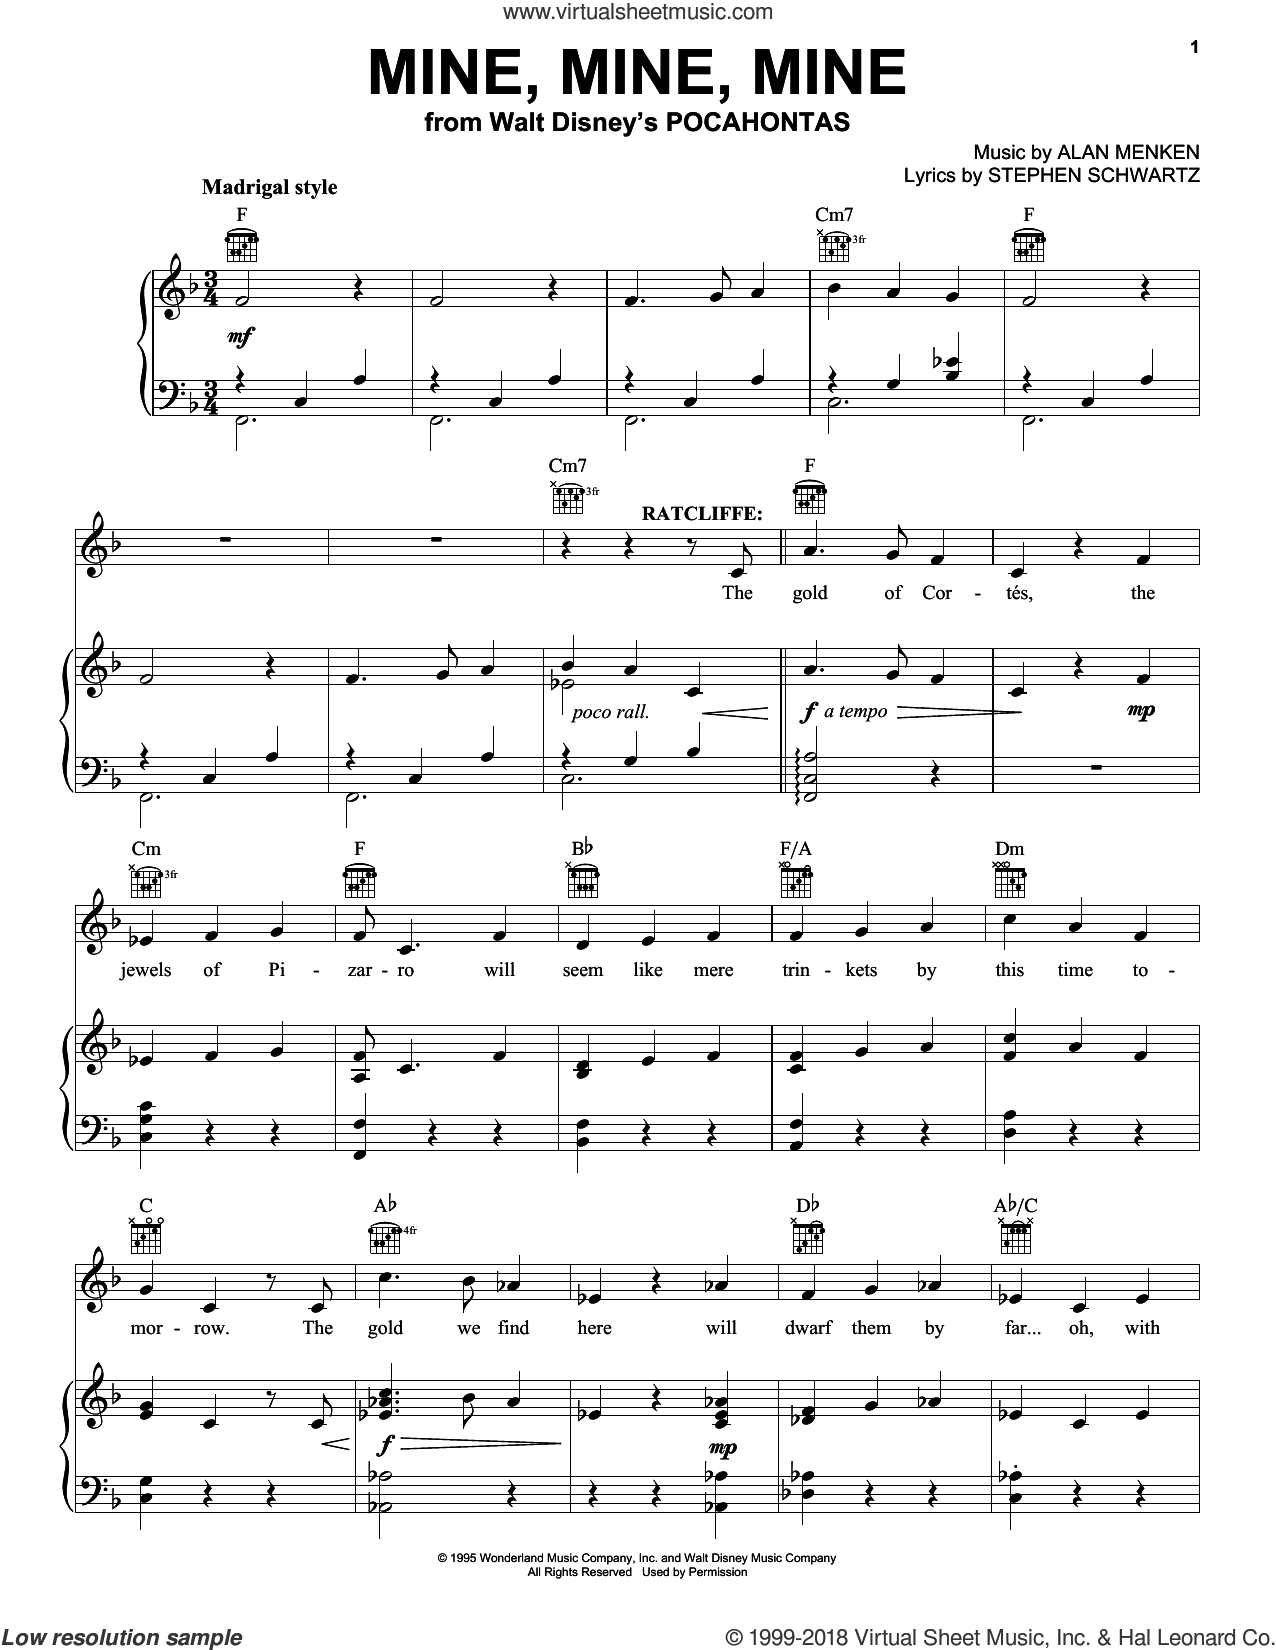 Mine, Mine, Mine sheet music for voice, piano or guitar by Alan Menken and Stephen Schwartz, intermediate skill level